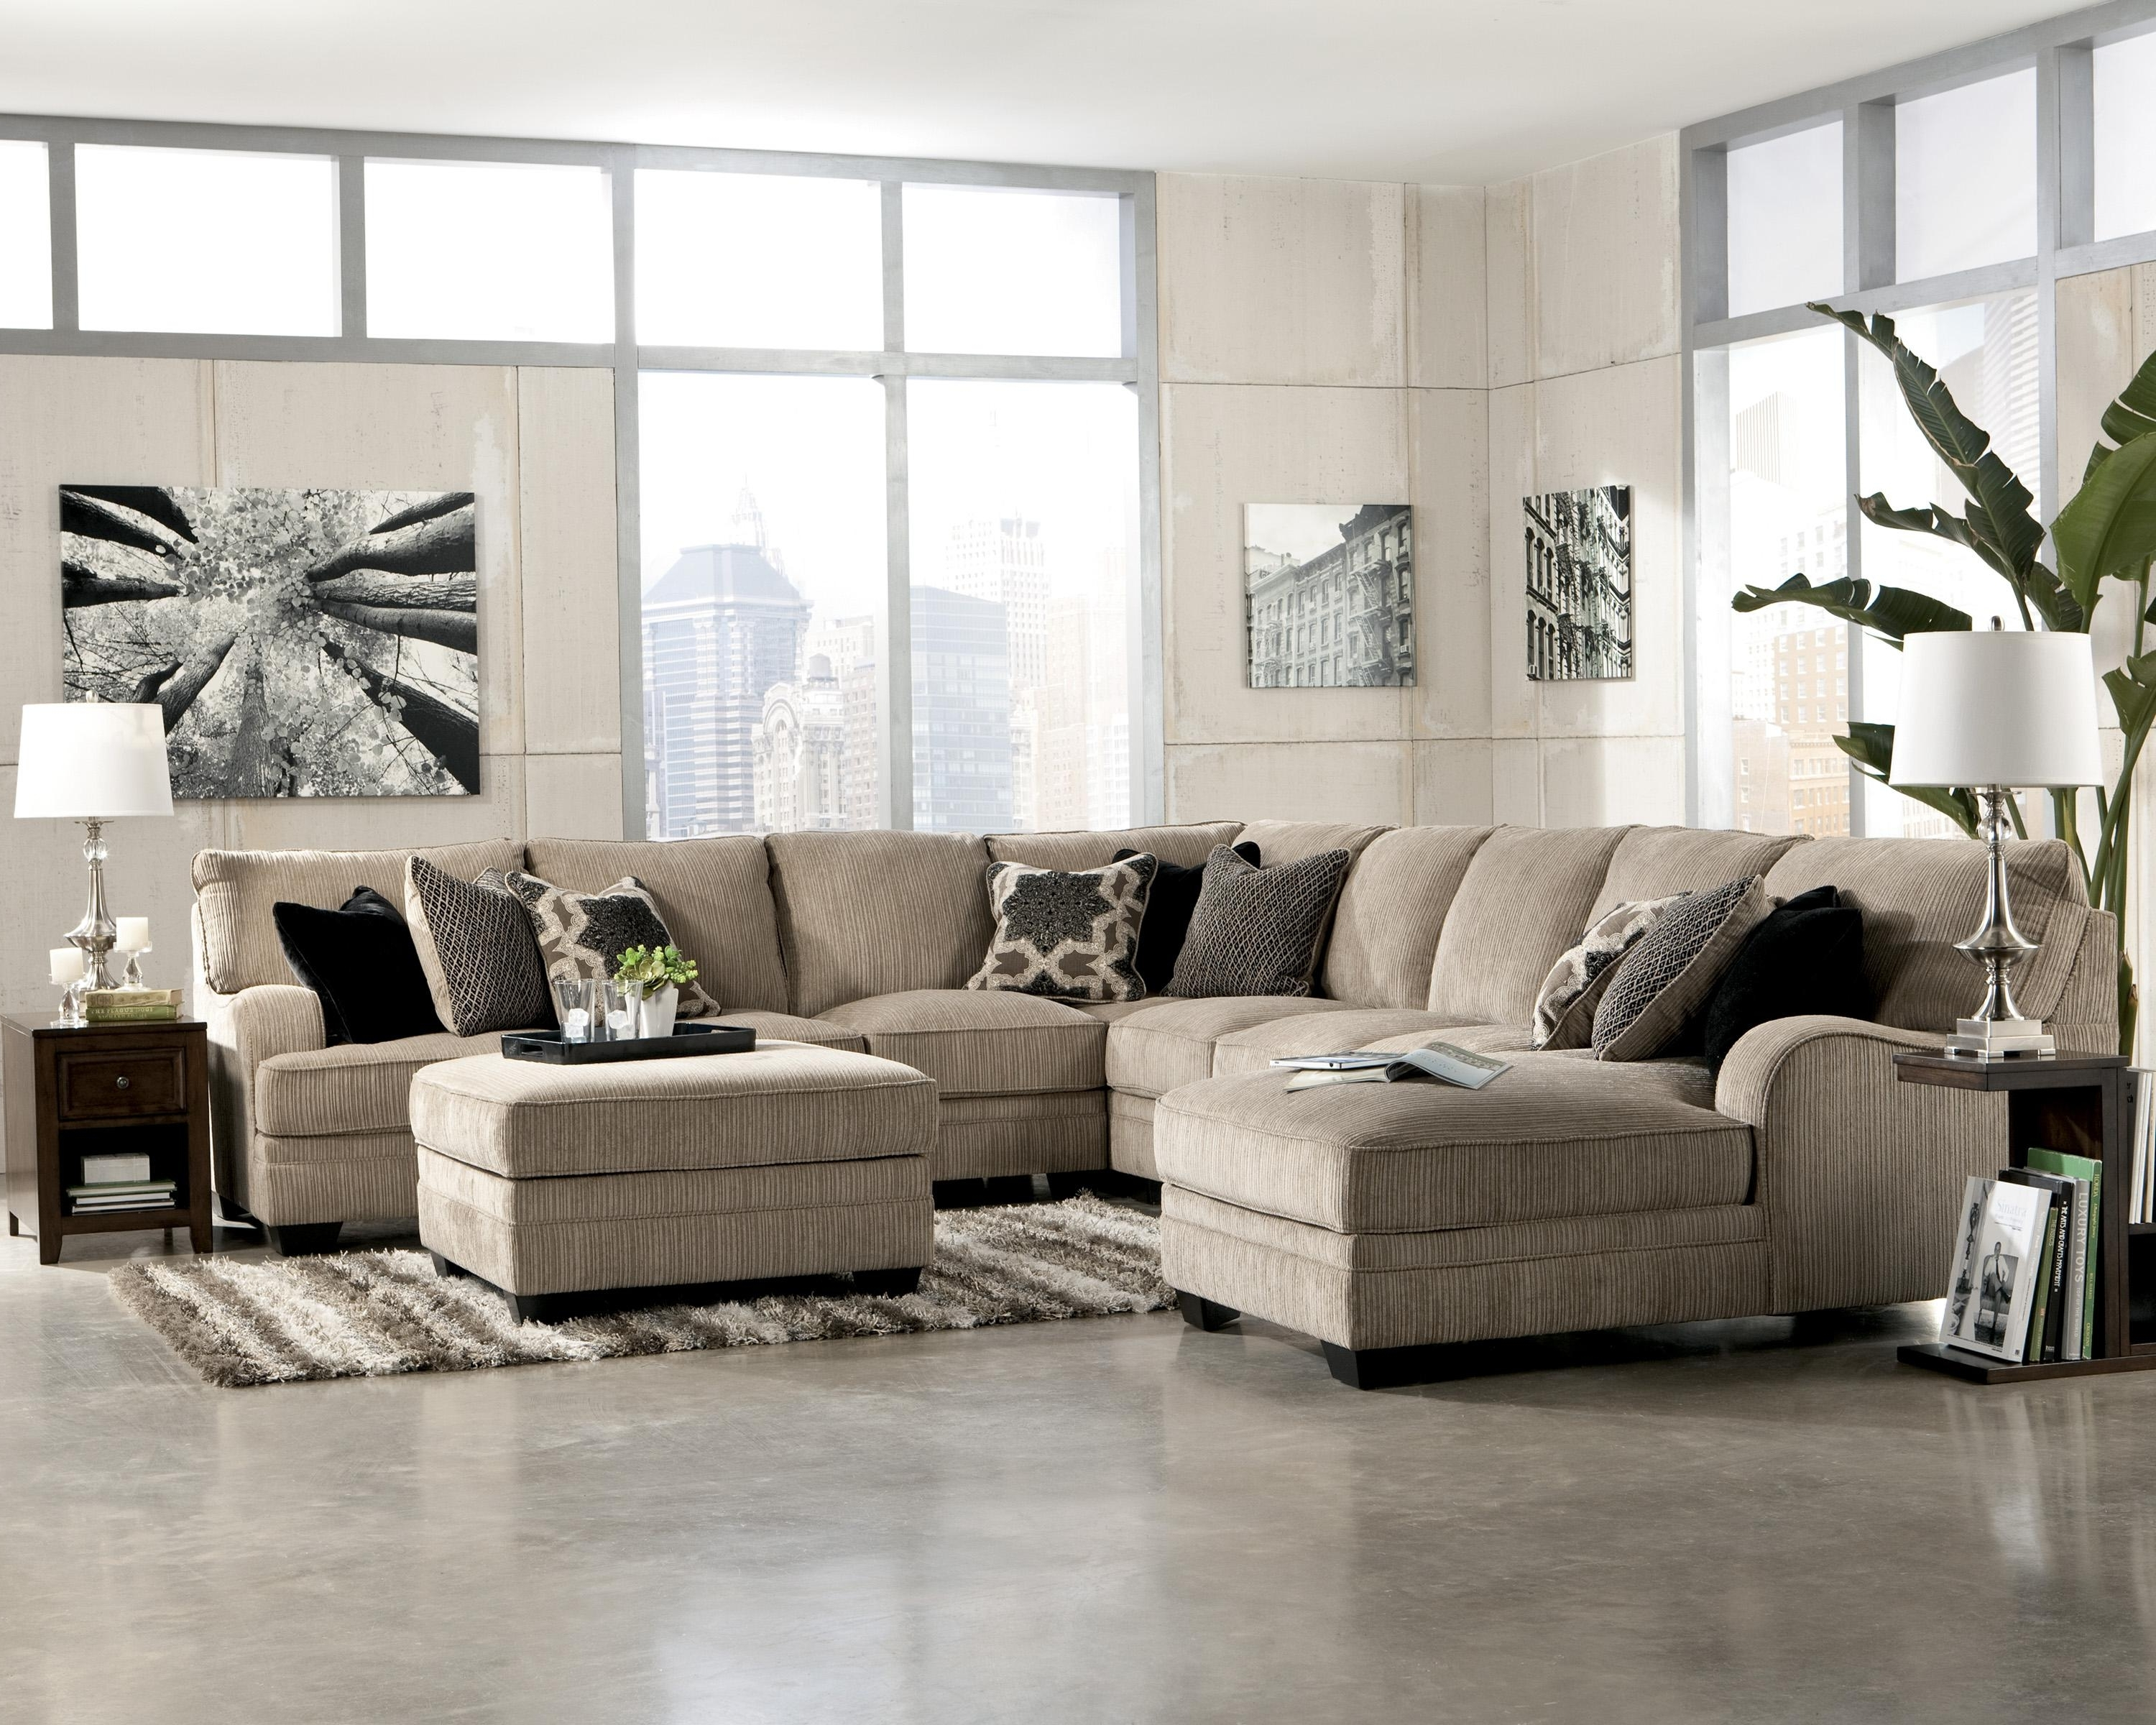 Katisha – Platinum 5 Piece Sectional Sofa With Left Chaise Regarding Well Known Jackson Ms Sectional Sofas (View 11 of 20)